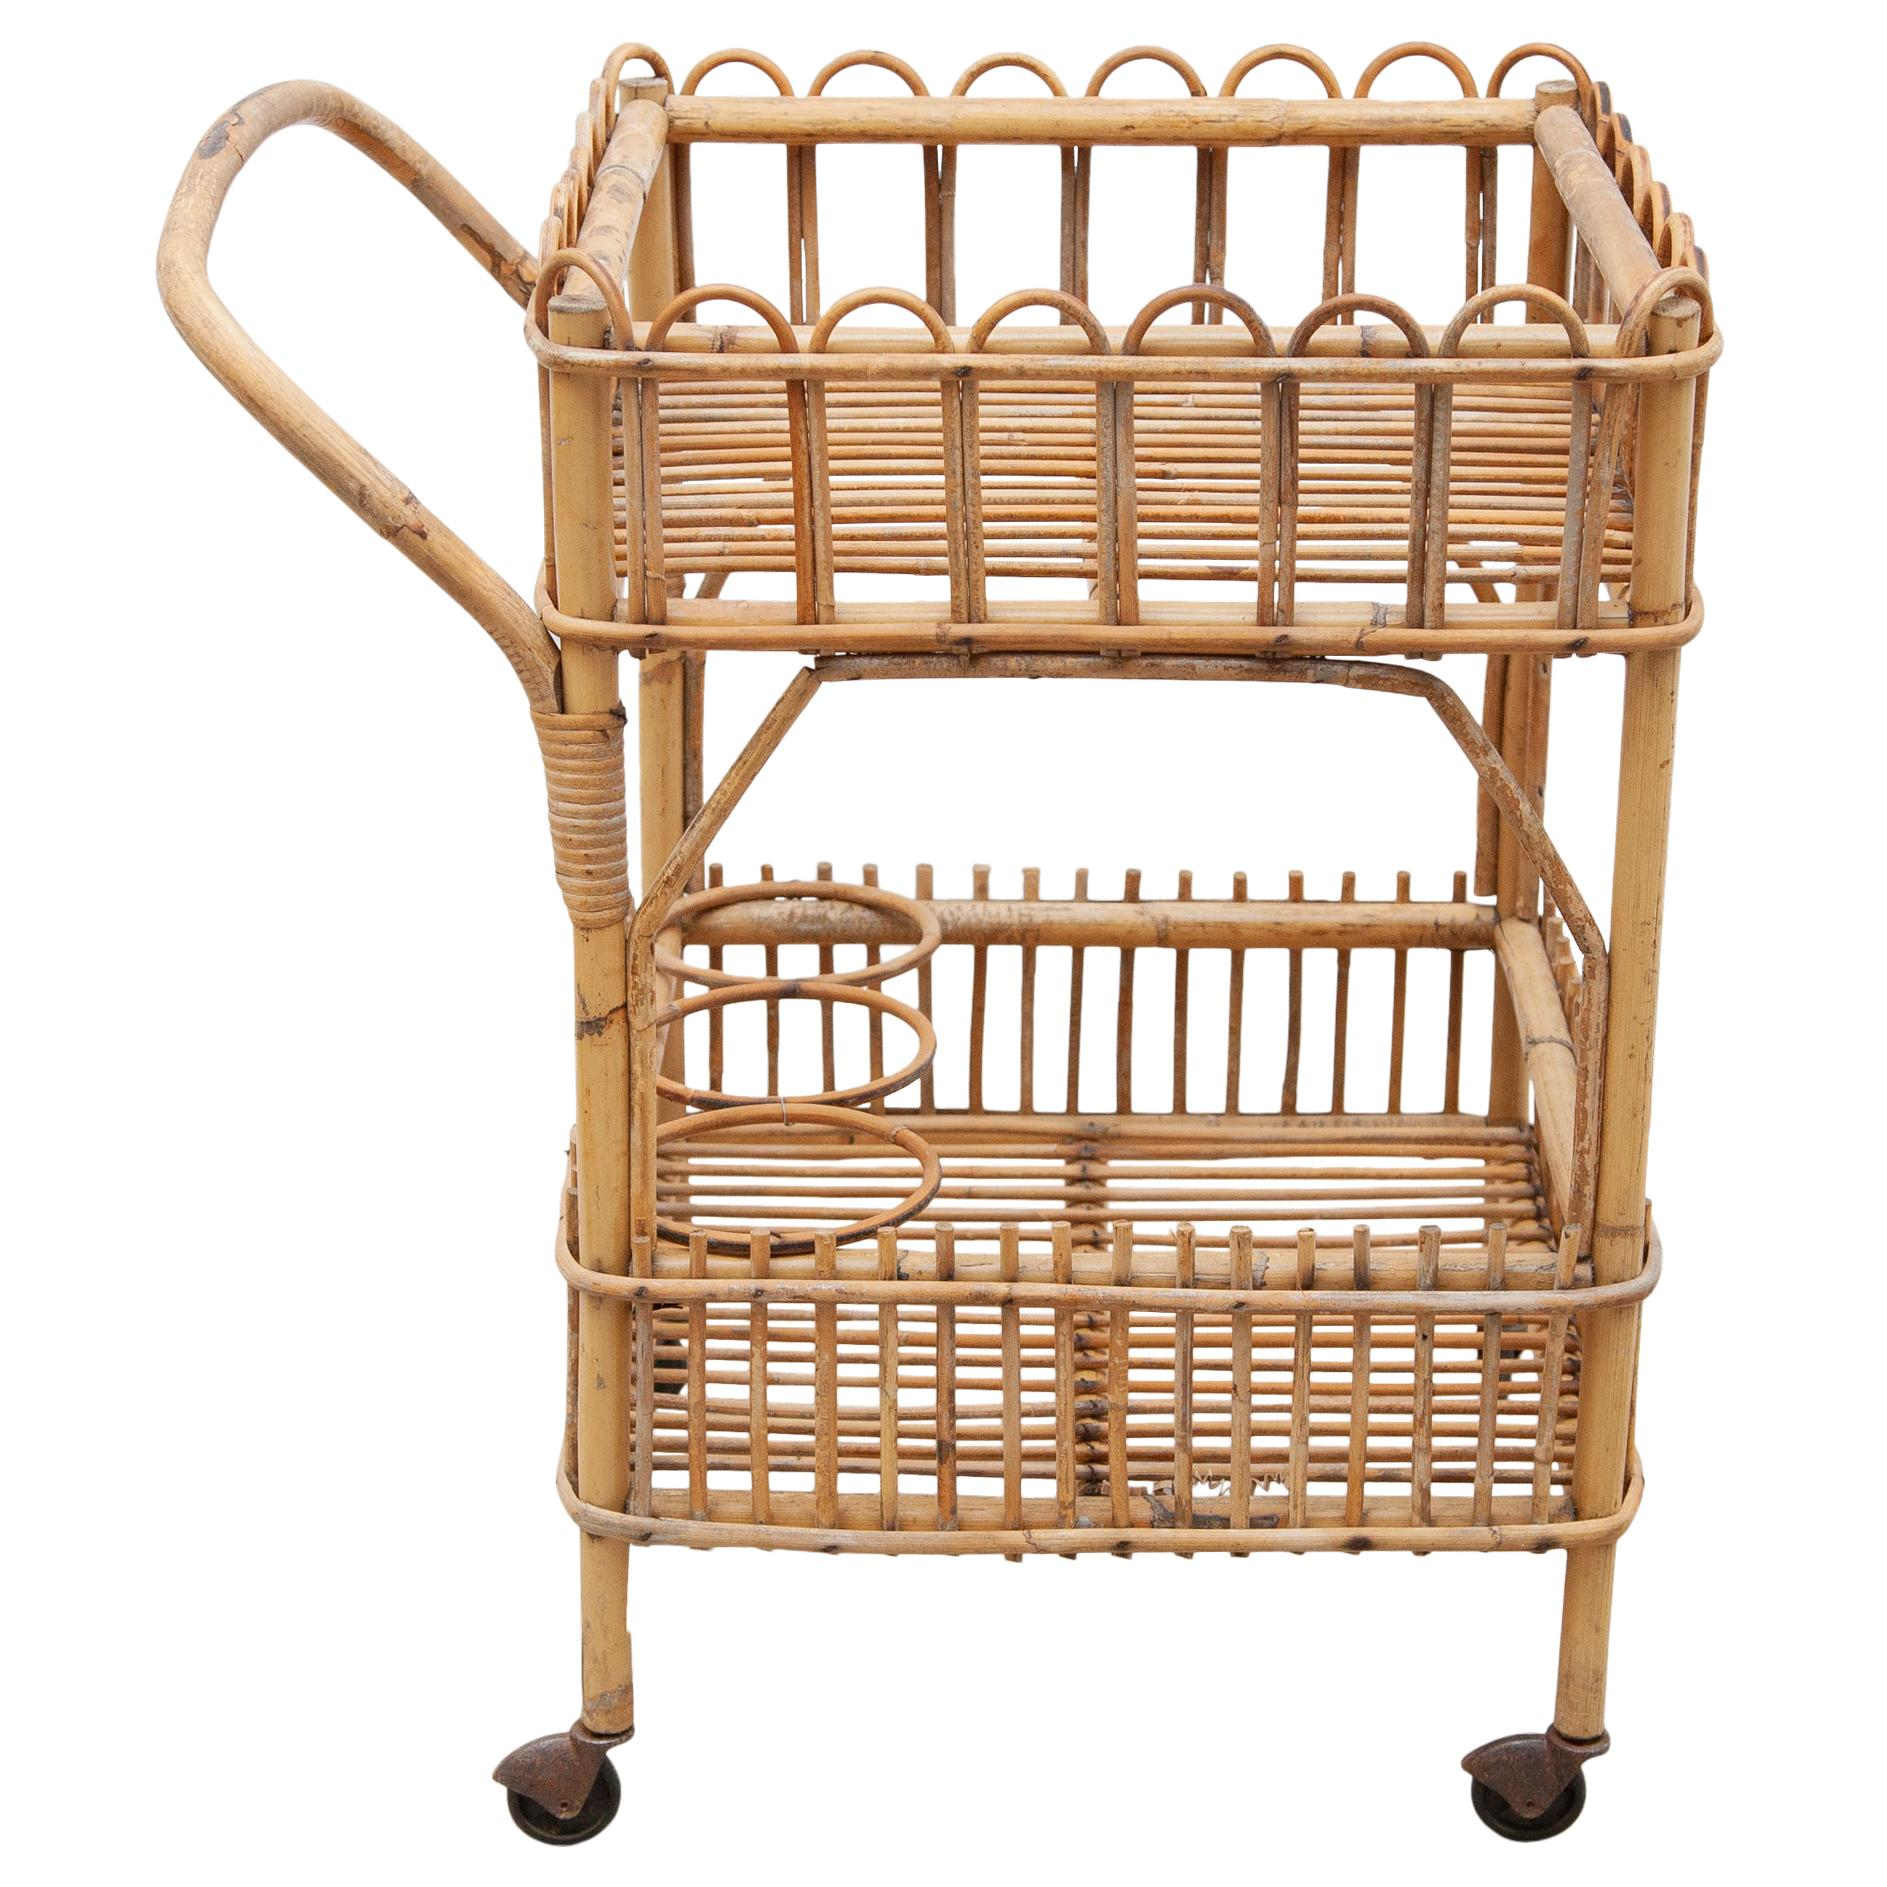 Bamboo Bar-Cart, Serving Trolley, 1950s, Italy